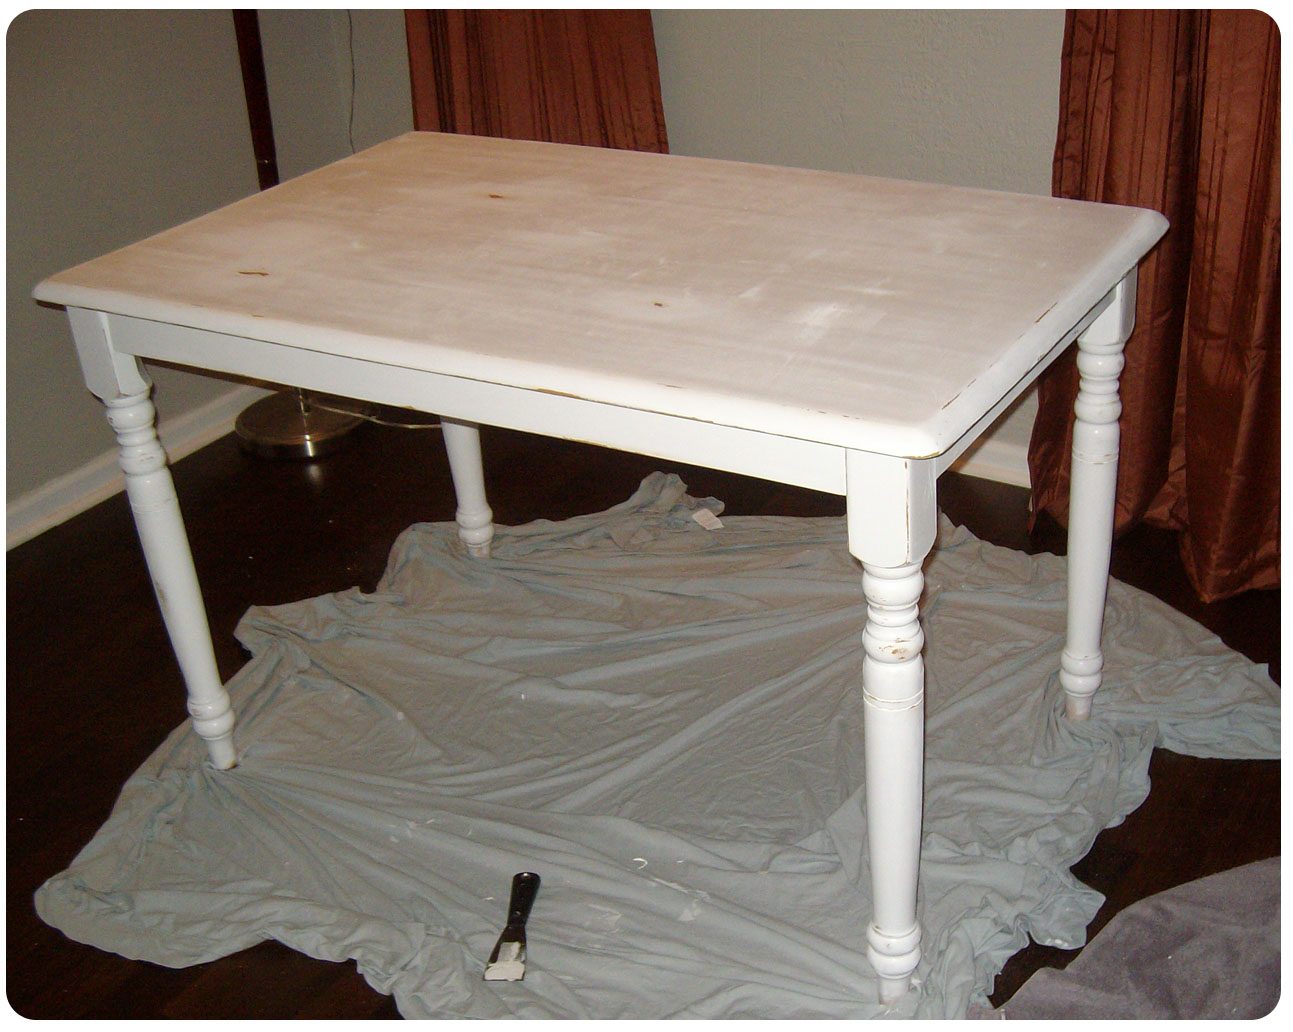 Dining table painted dining tables distressed - Painted dining tables distressed ...